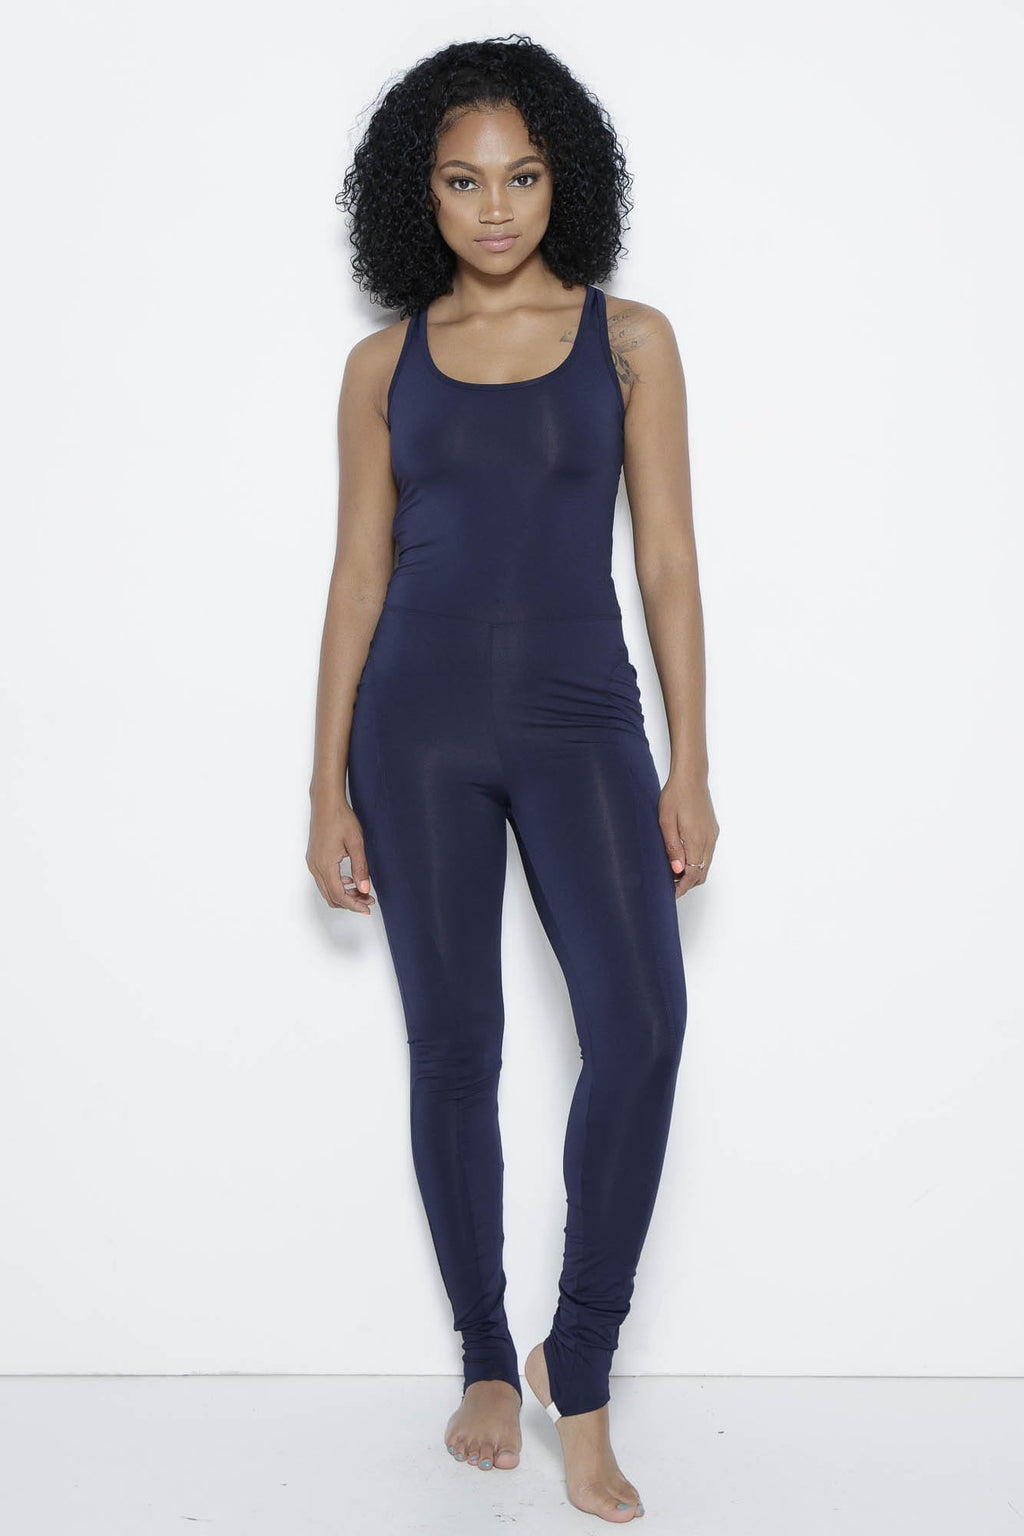 MSFIT Jumpsuit-Navy/White Clothing Fair Shade S Navy/White 87% Polyester- 13% Spandex